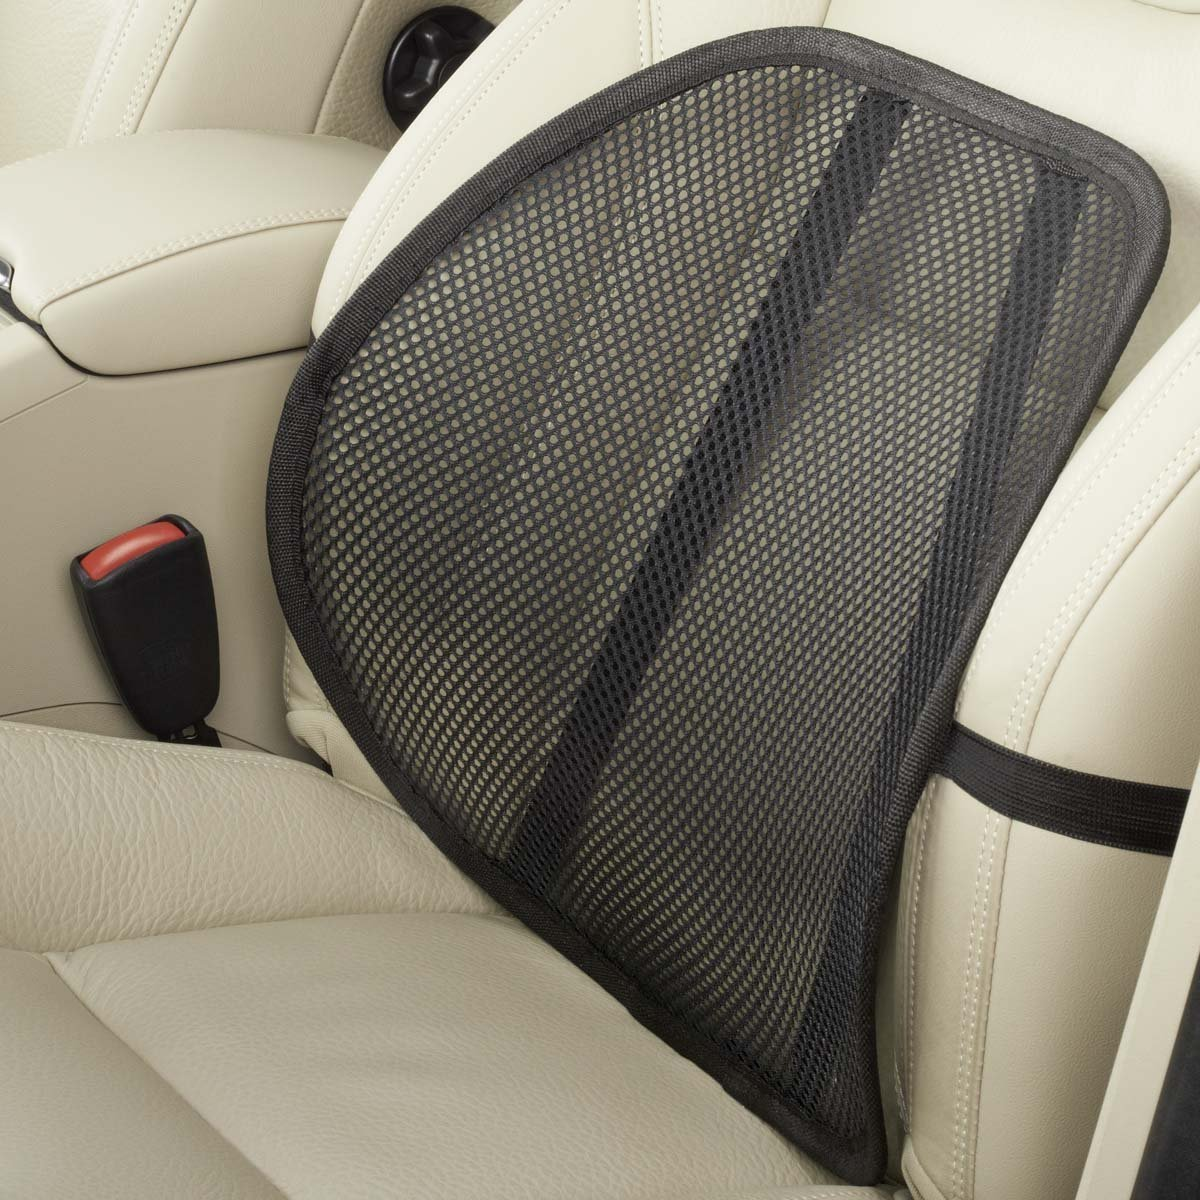 Amazon JML Sit Right Comfort Mesh Office Car Chair Seat Support Improves Back Posture Health Personal Care